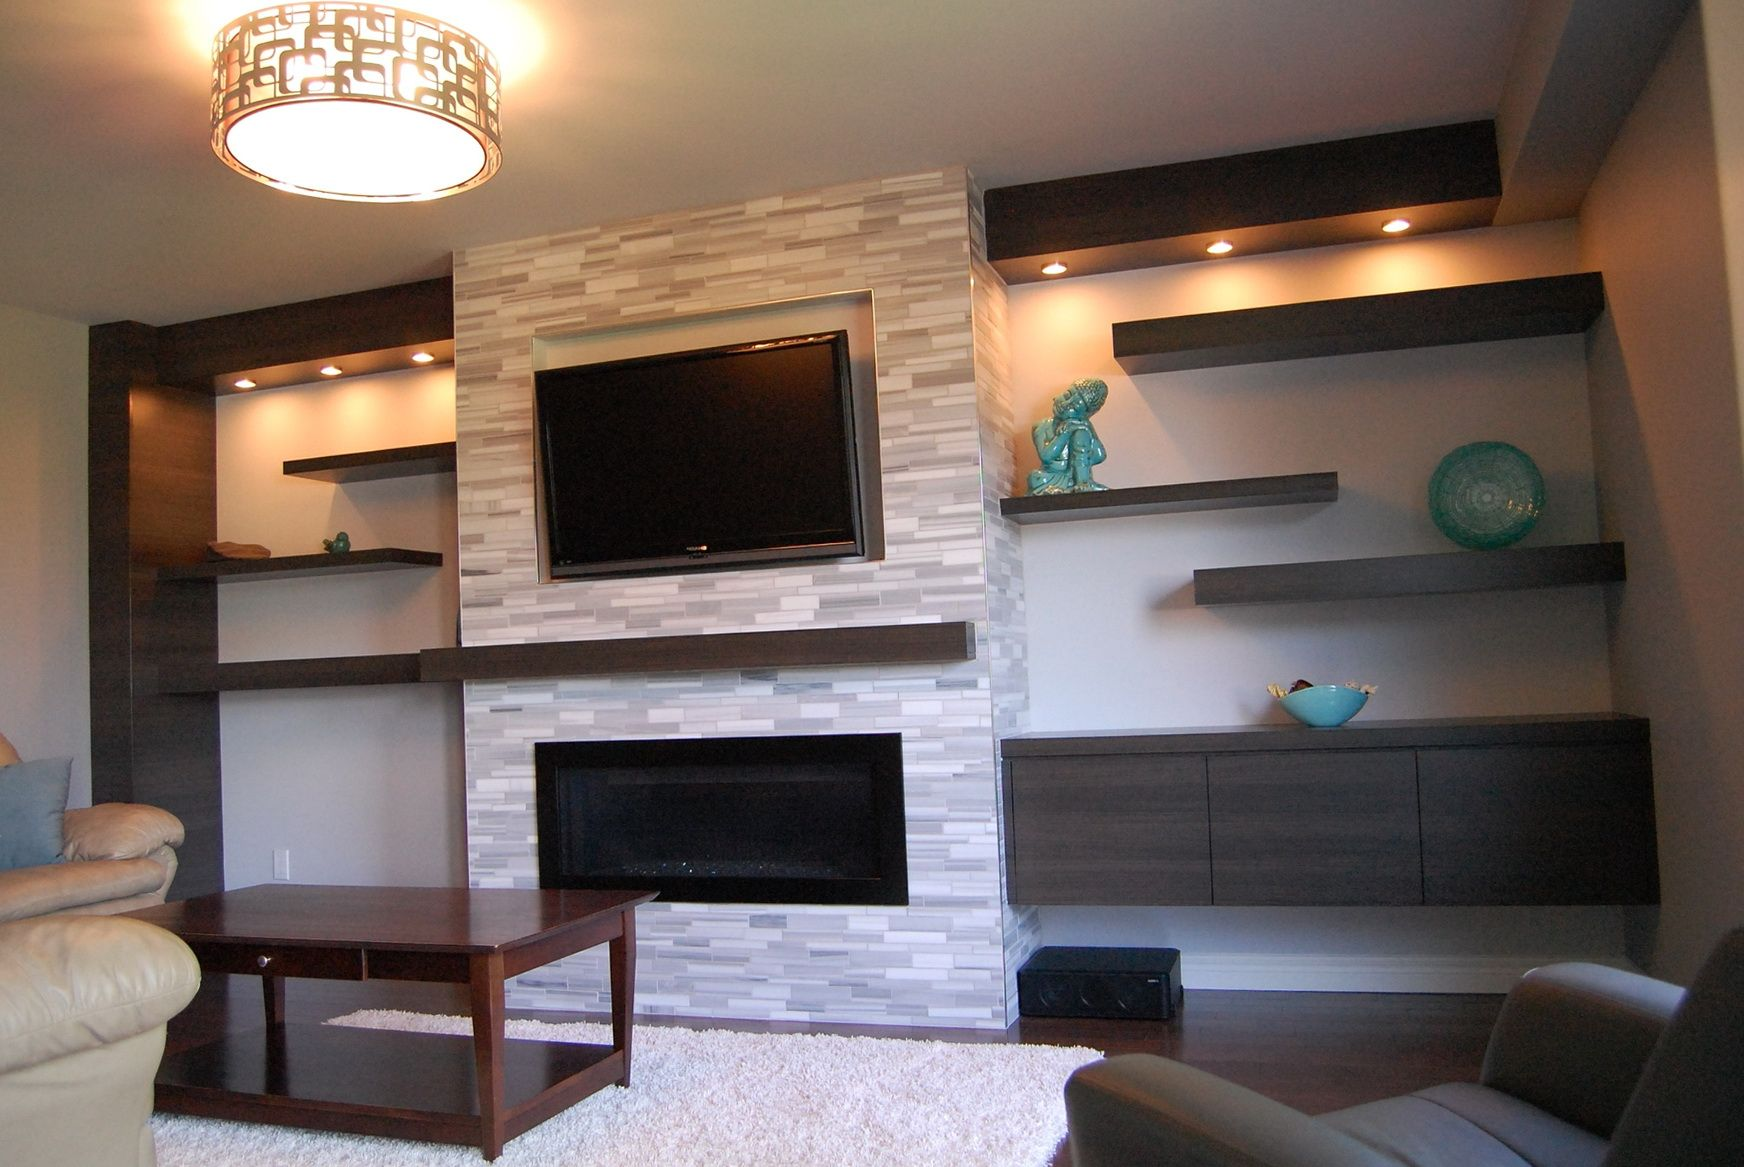 Chic And Modern Tv Wall Mount Ideas For Living Room Fireplace Tv